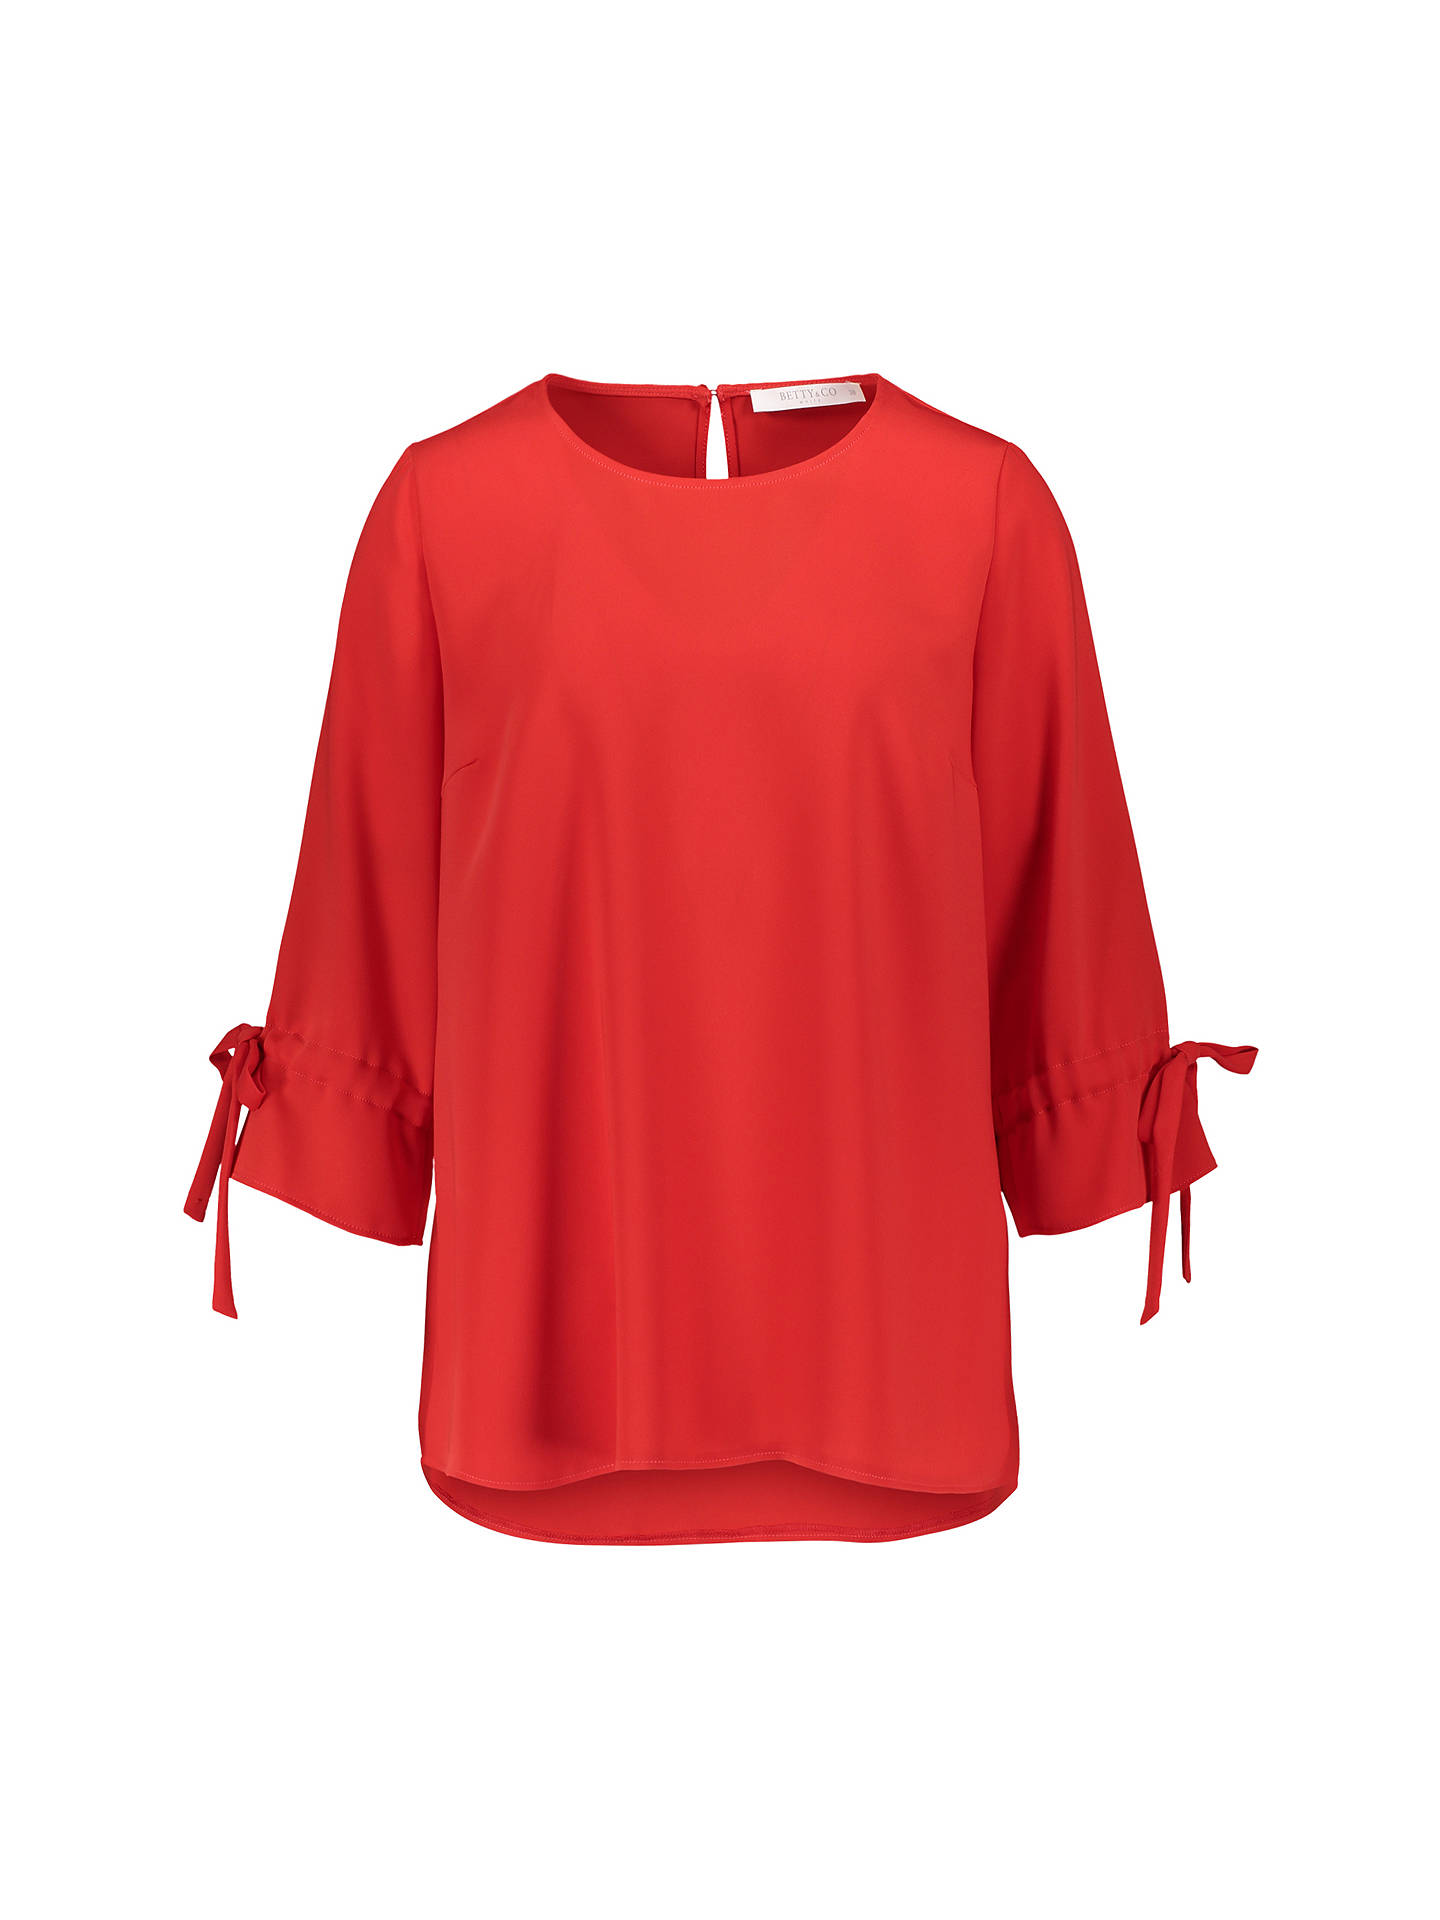 BuyBetty & Co. Long Blouse, Tomato, 10 Online at johnlewis.com